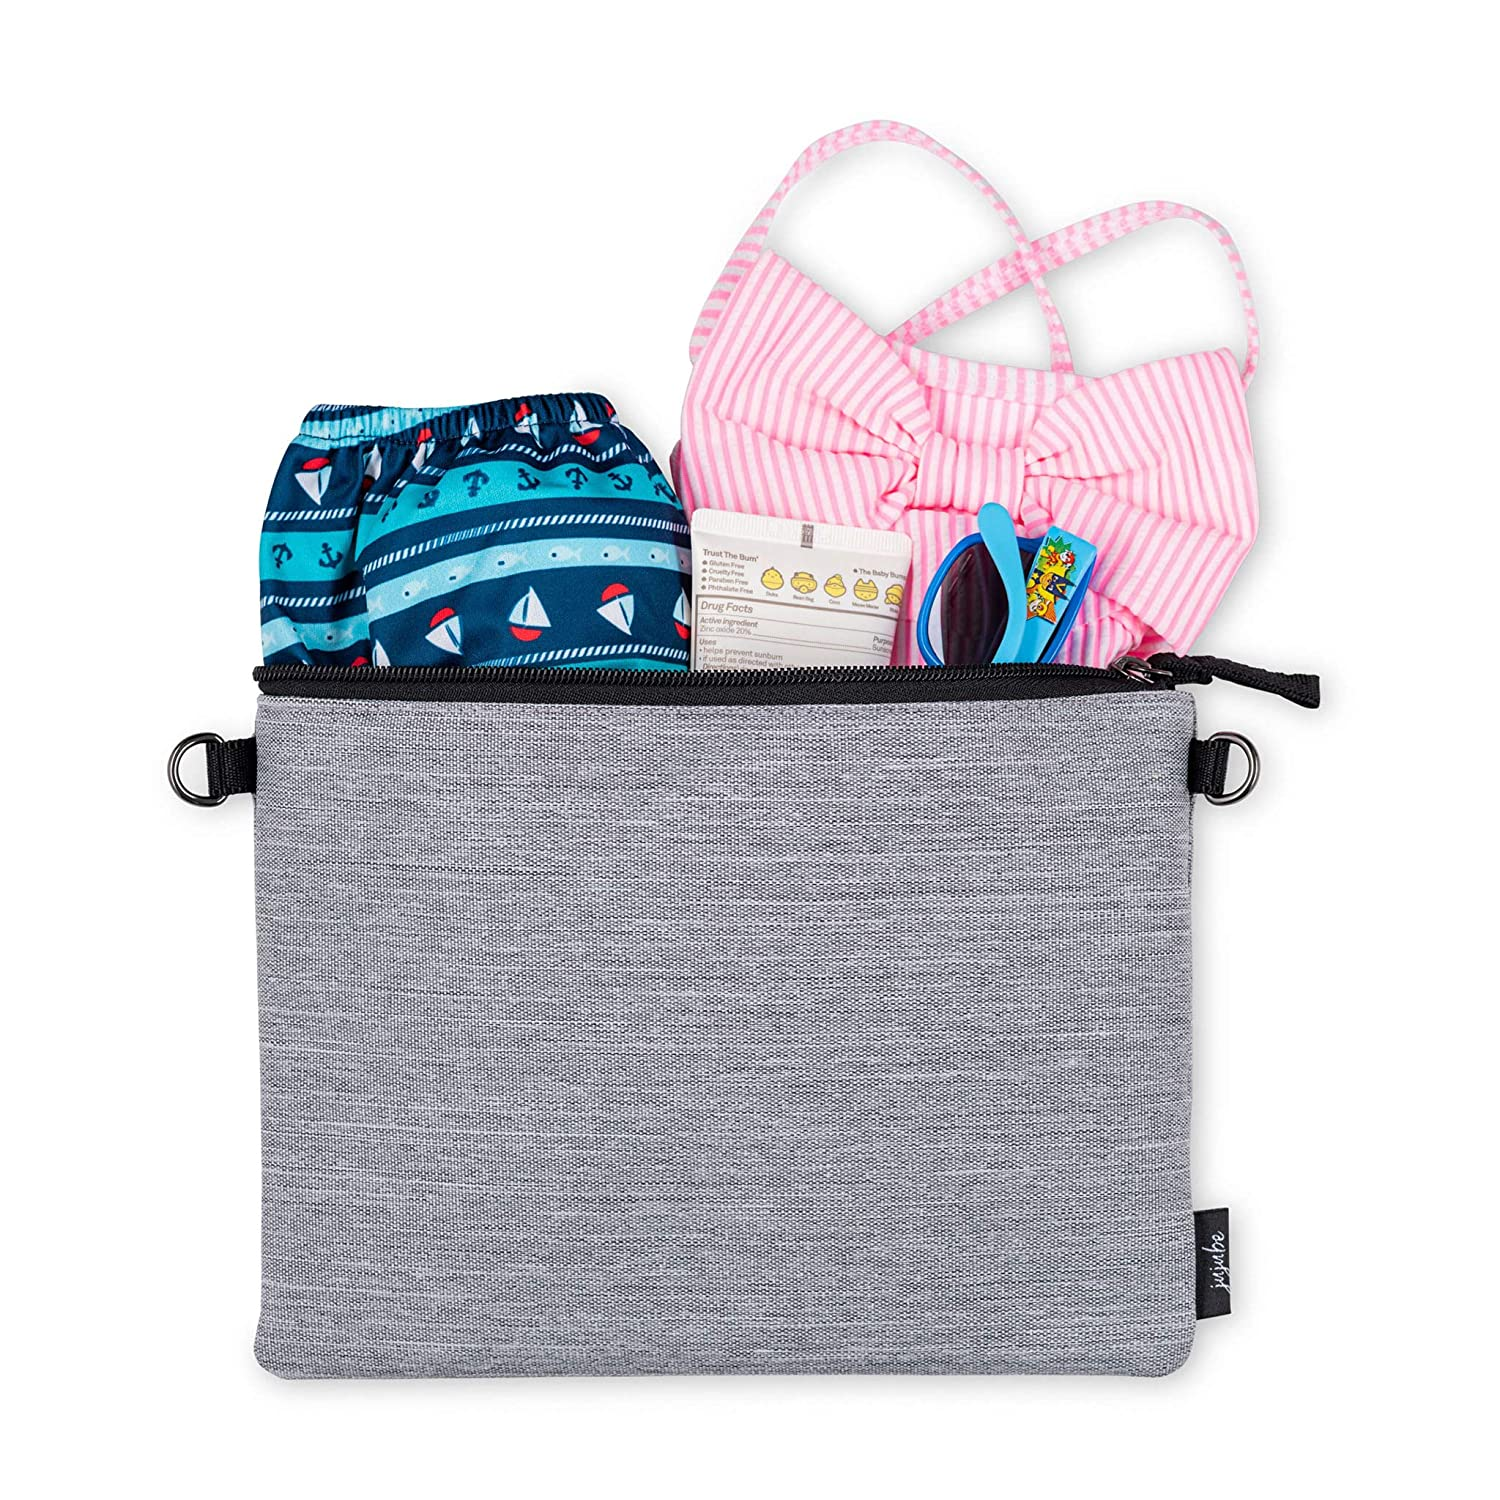 On The Go Machine Washable Travel Bags with Zipper Closure Waterproof Reusable Bags 3-in-1 Set Organization for Diaper Bags Strike Off JuJuBe Dry Wet Bags Baby Strollers